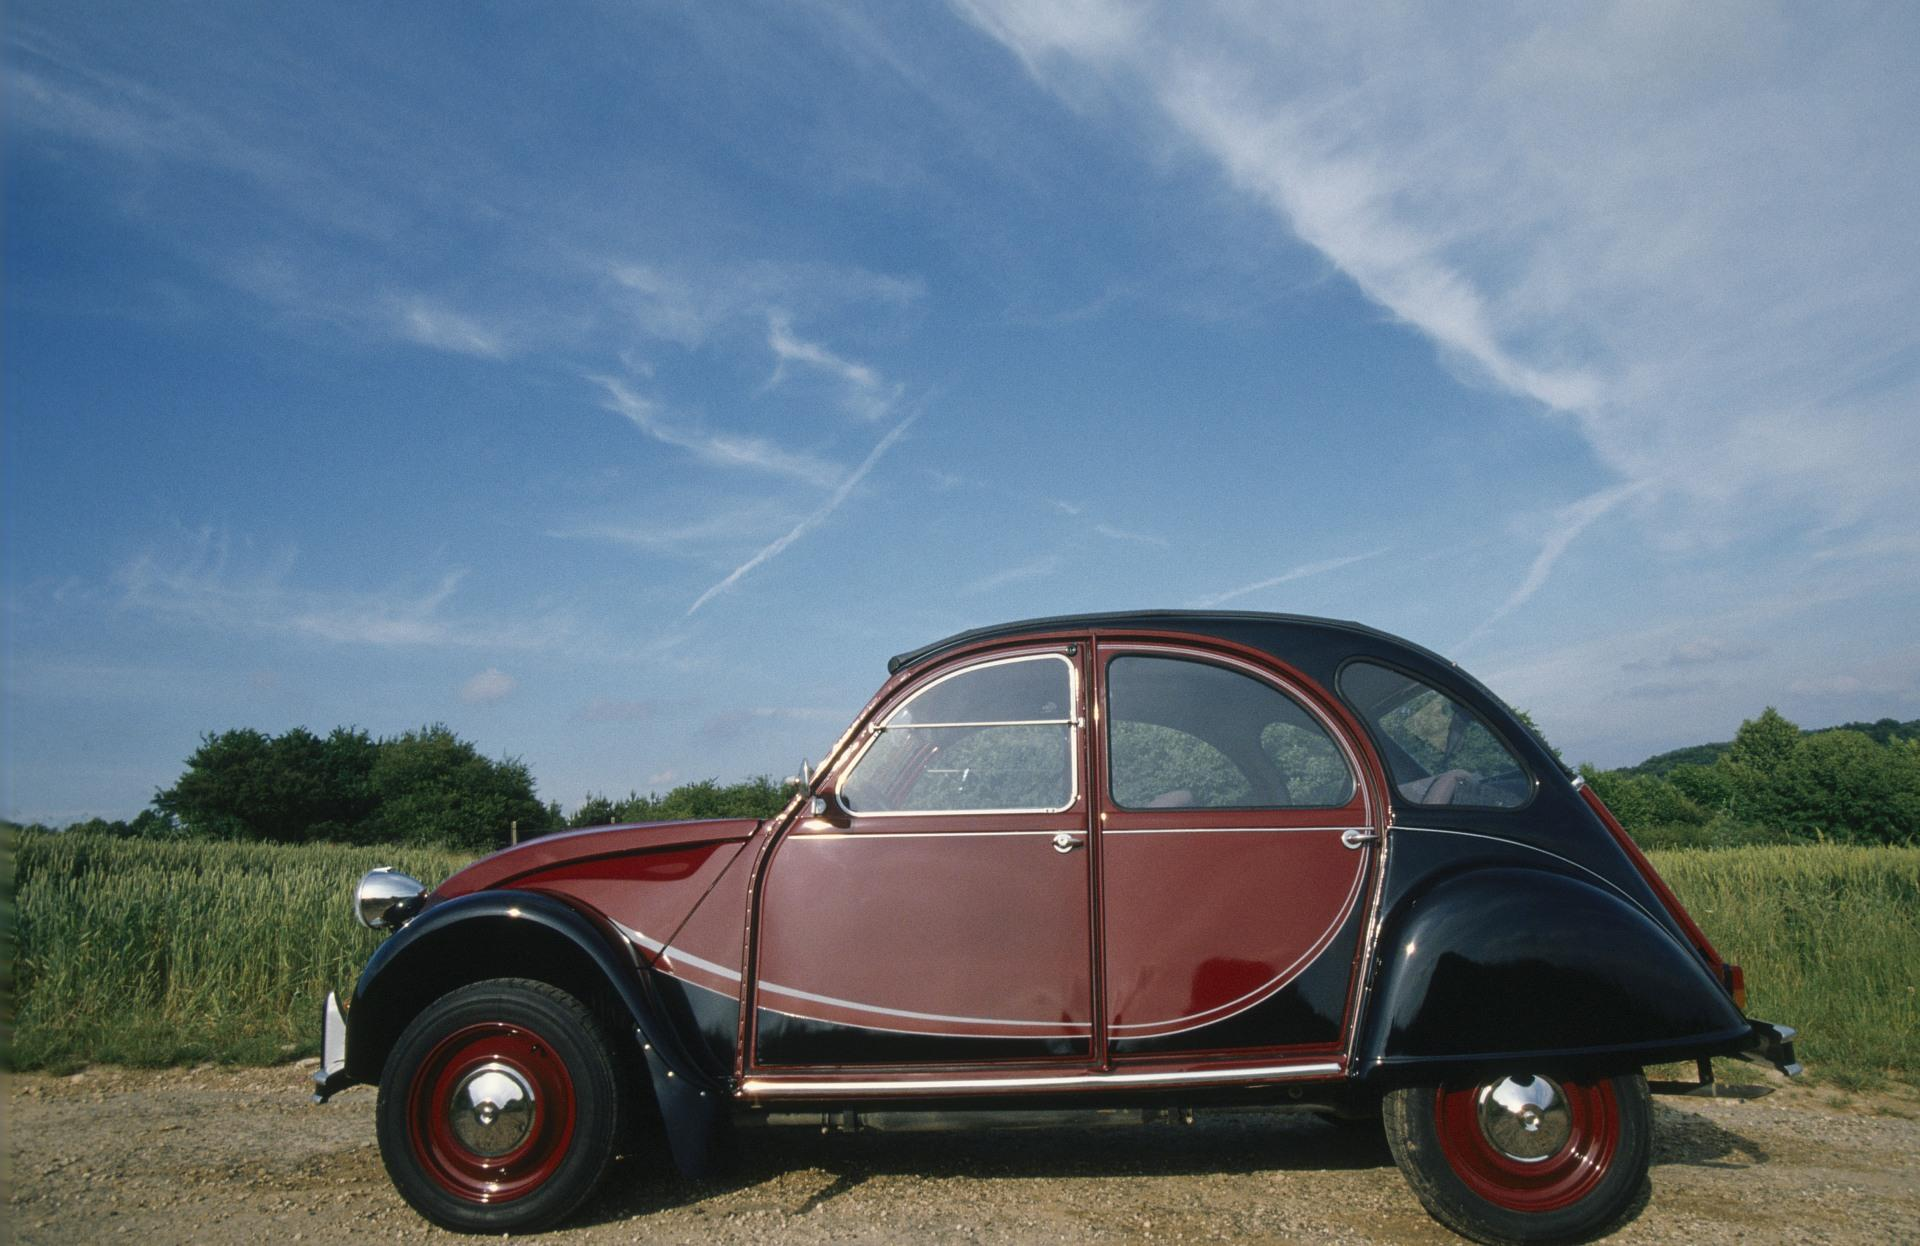 1983 citroen 2cv charleston pictures  history  value  research  news